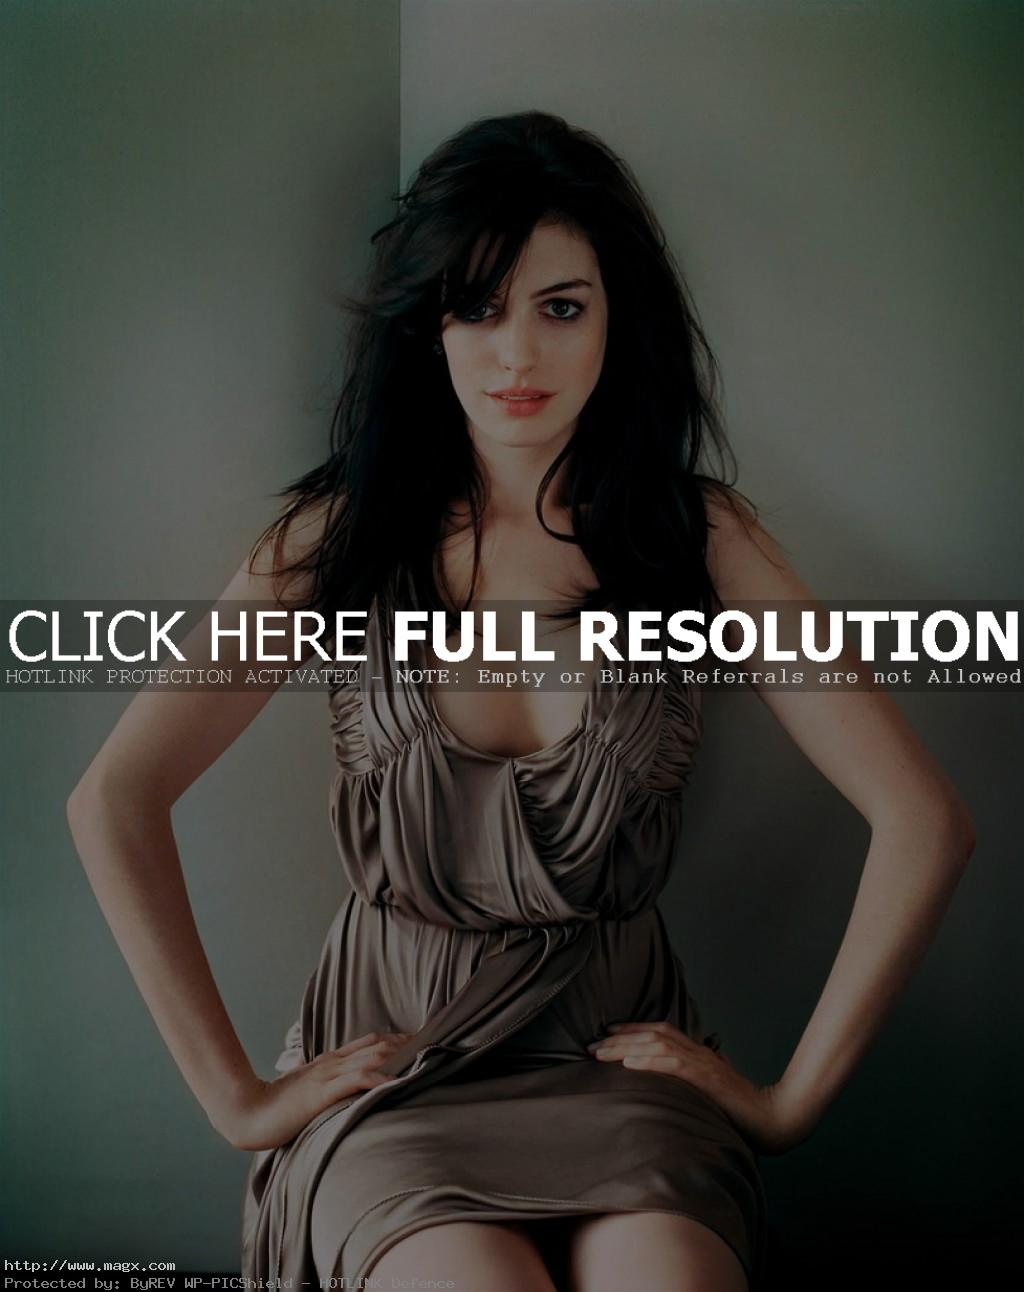 anne hathaway3 Anne Hathaway Biography and Hot Photos